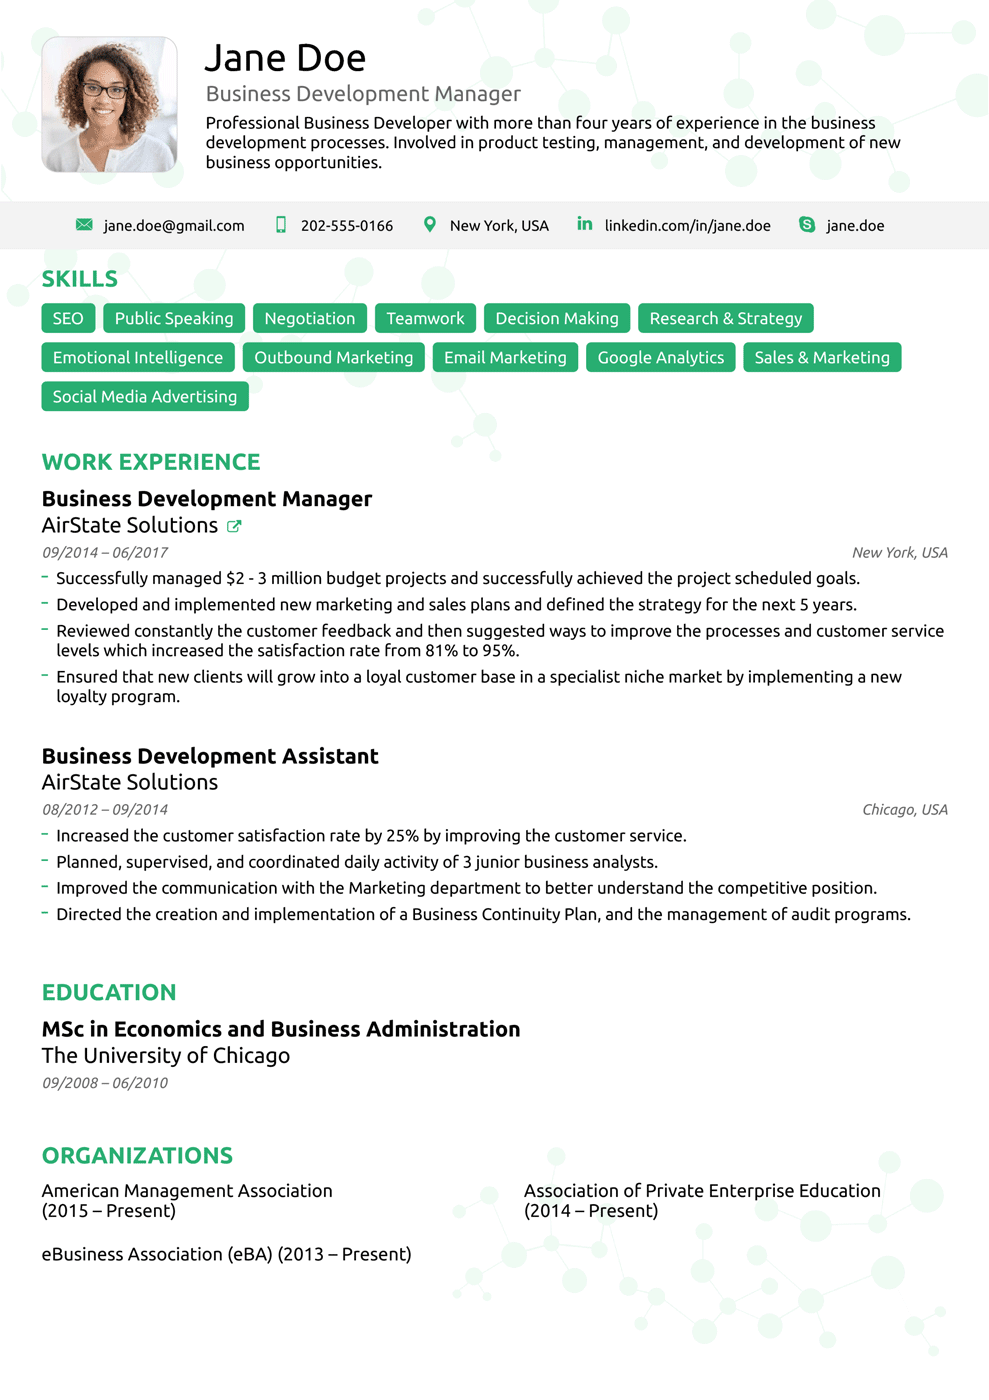 executive resume template - Resume Samples For Professionals